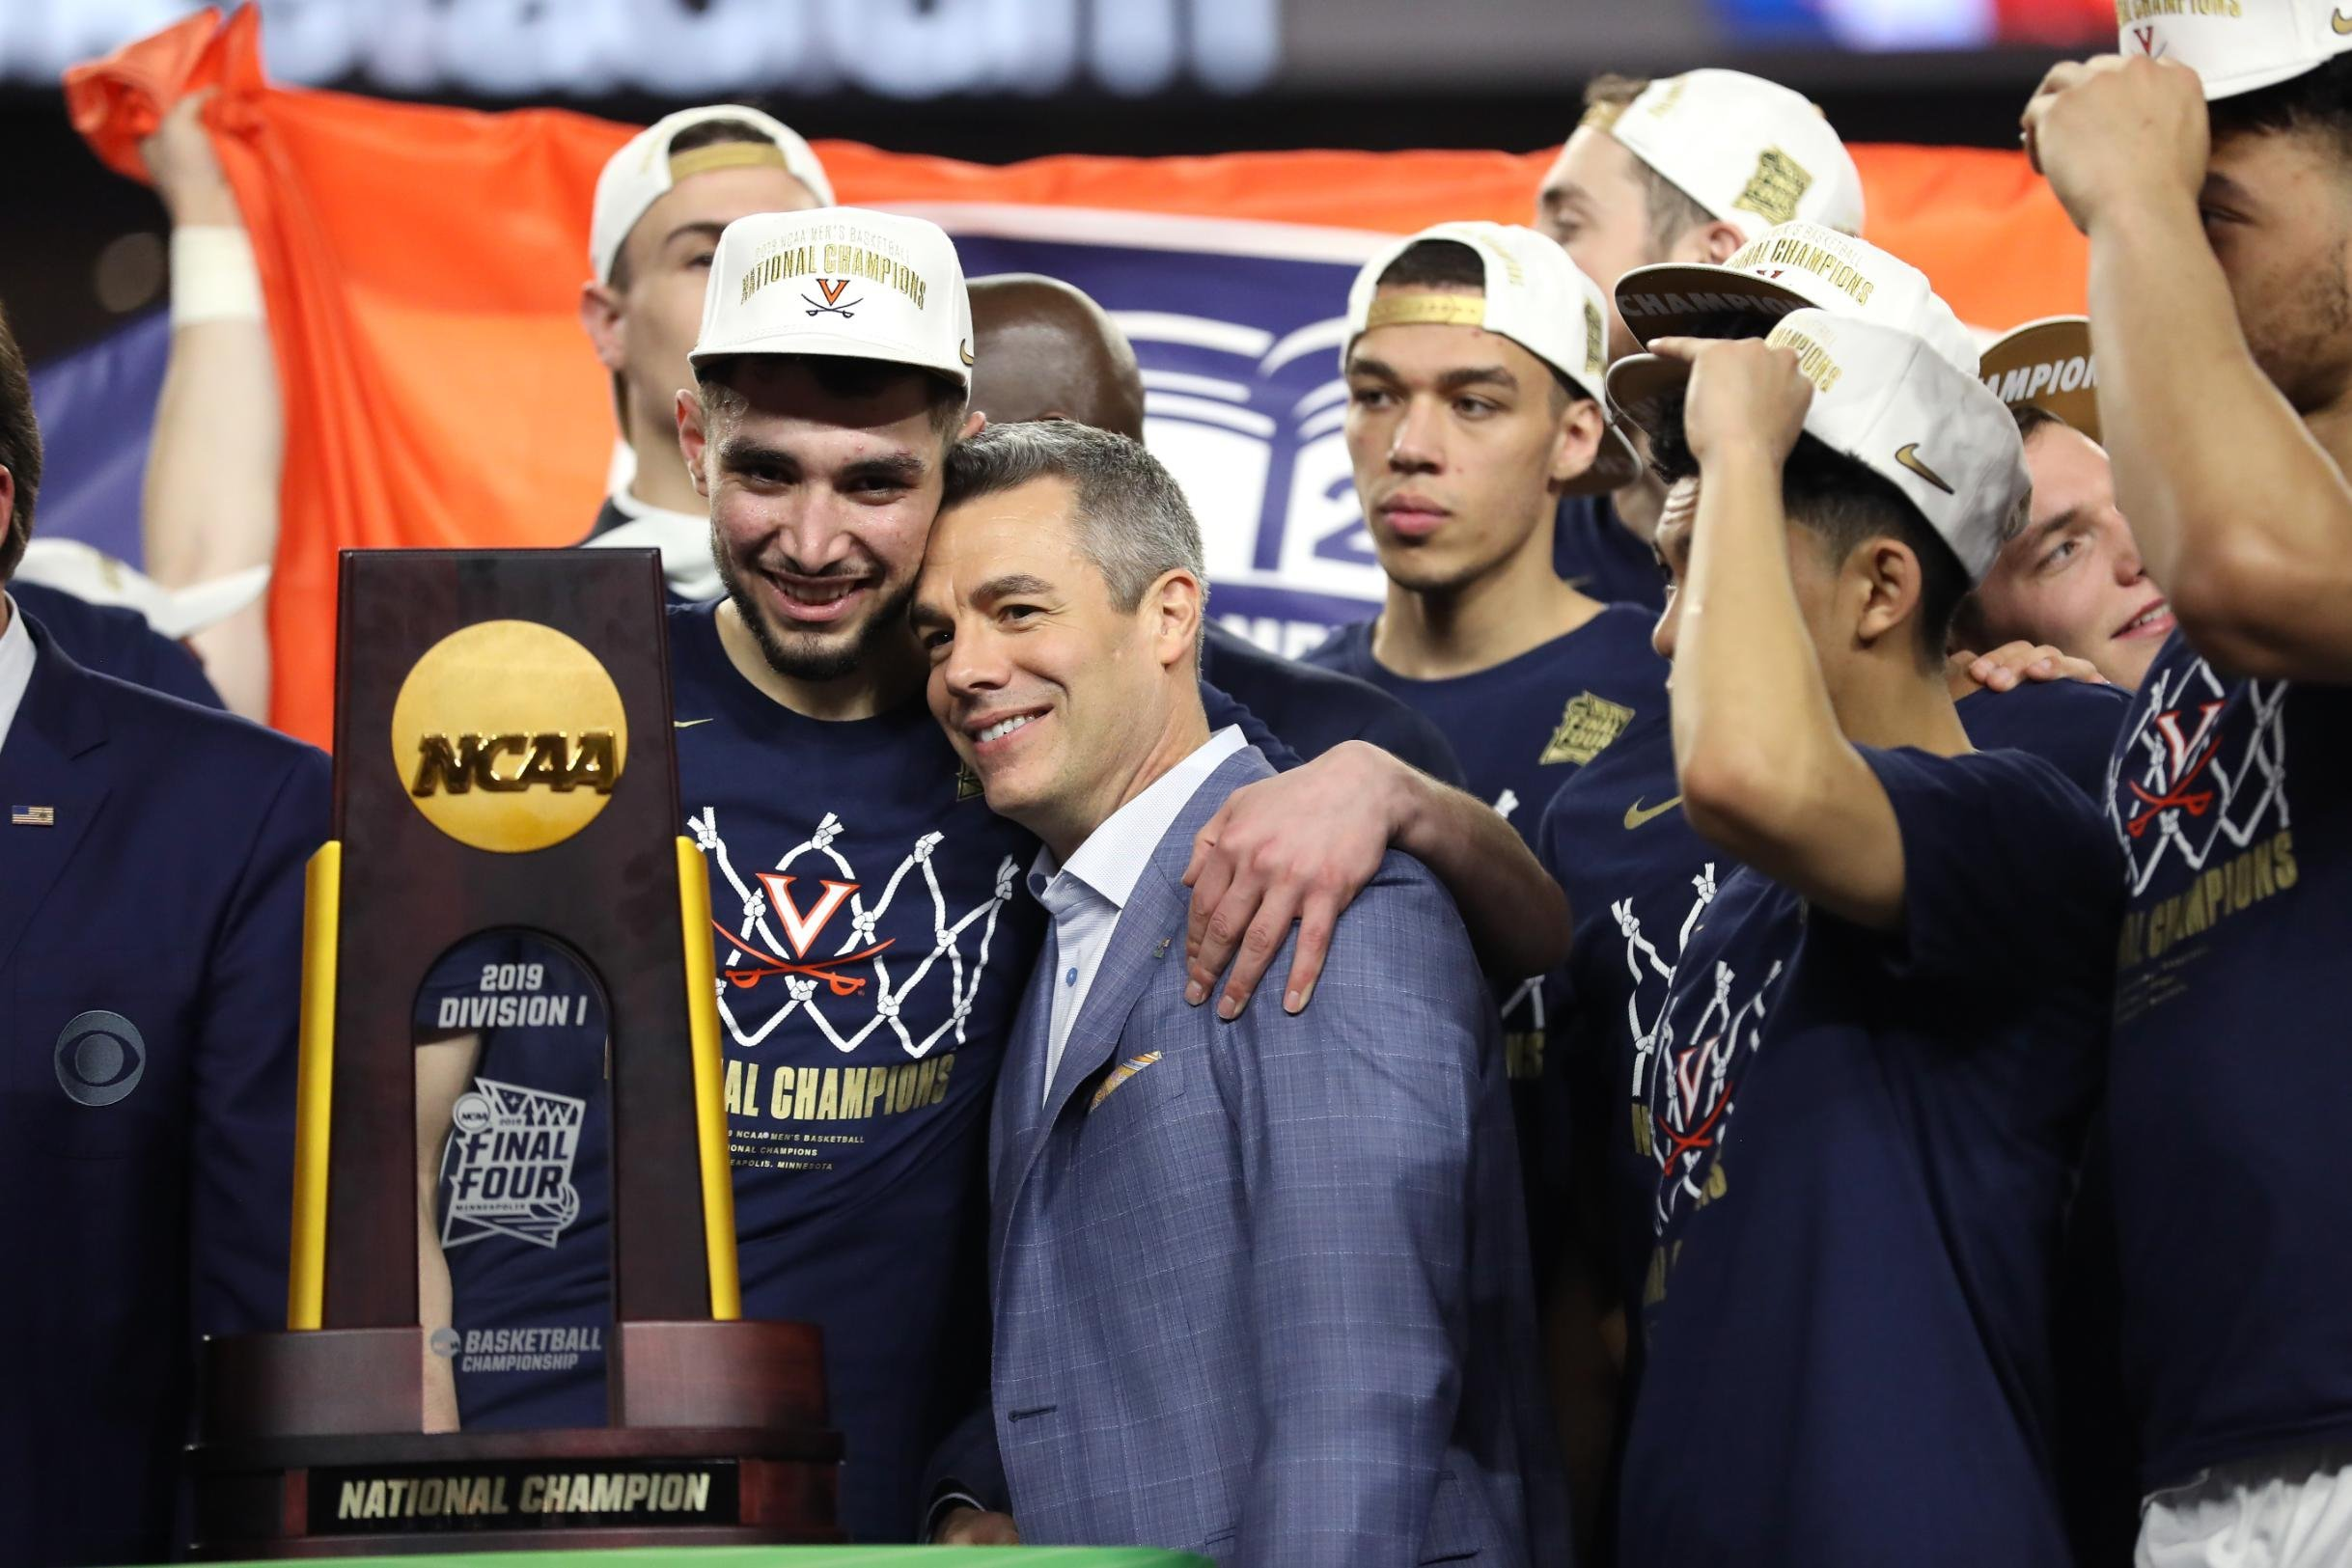 Virginia's basketball coach was offered a big raise after winning the championship. He turned it down so others could get the money